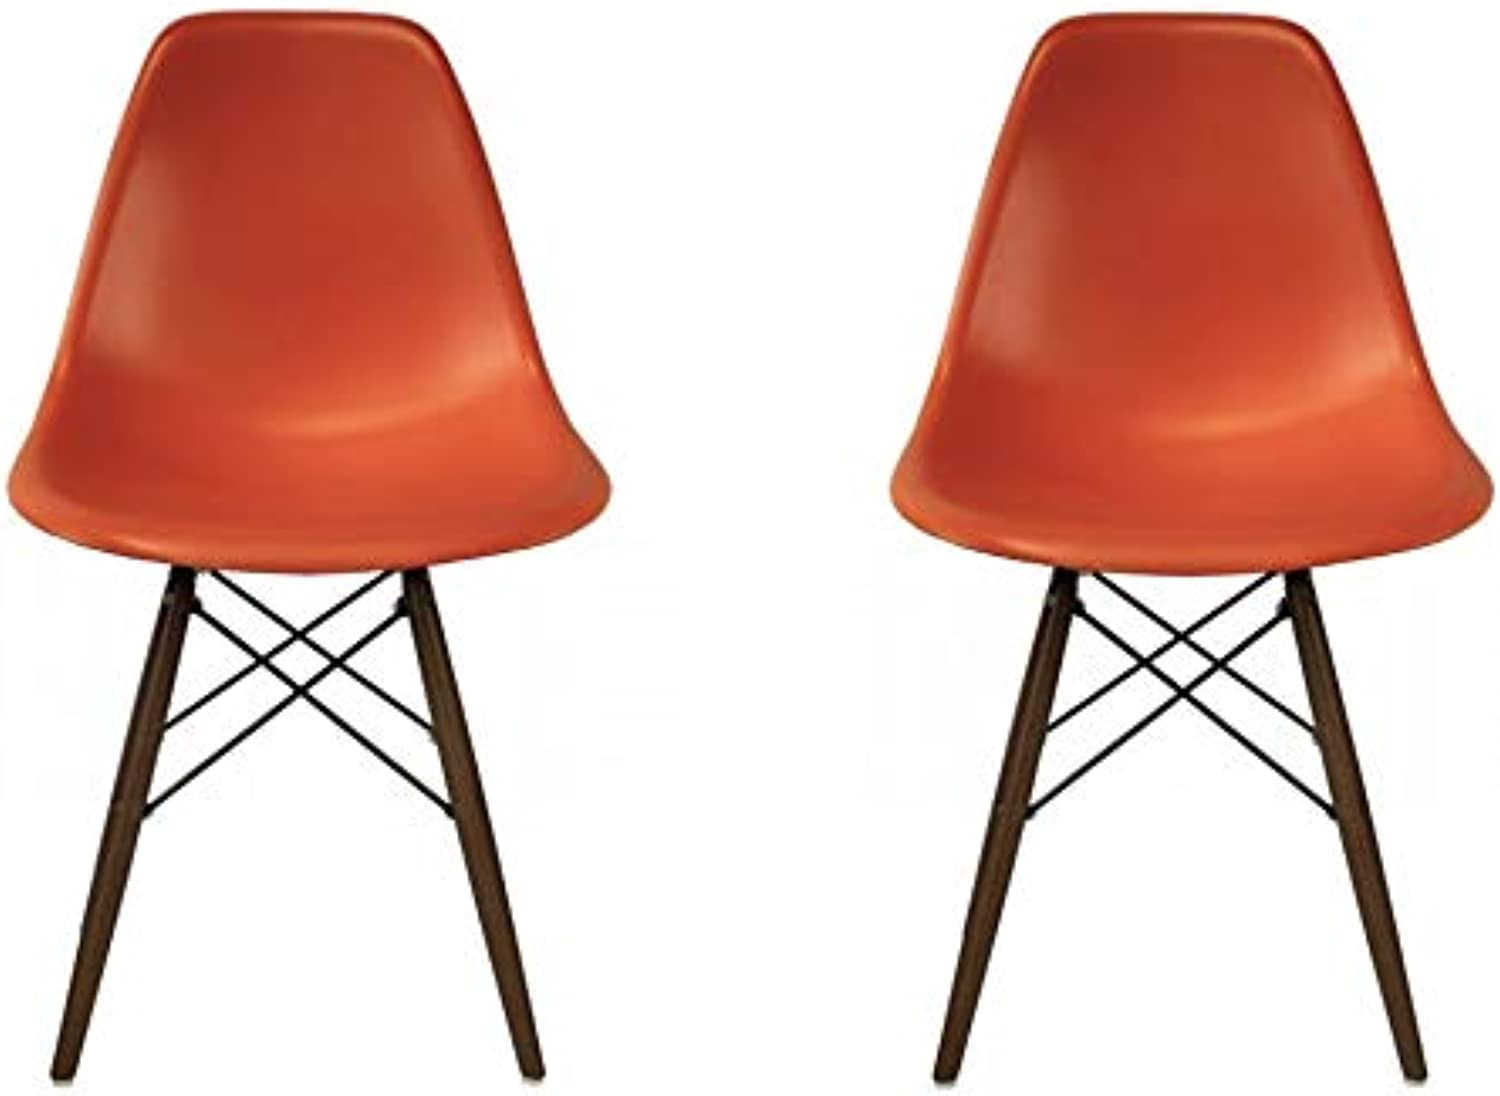 Take Me Home Furniture Eames Style Side Chair with Walnut Wood Legs Eiffel Dining Room Chair - Set of 2 (orange)